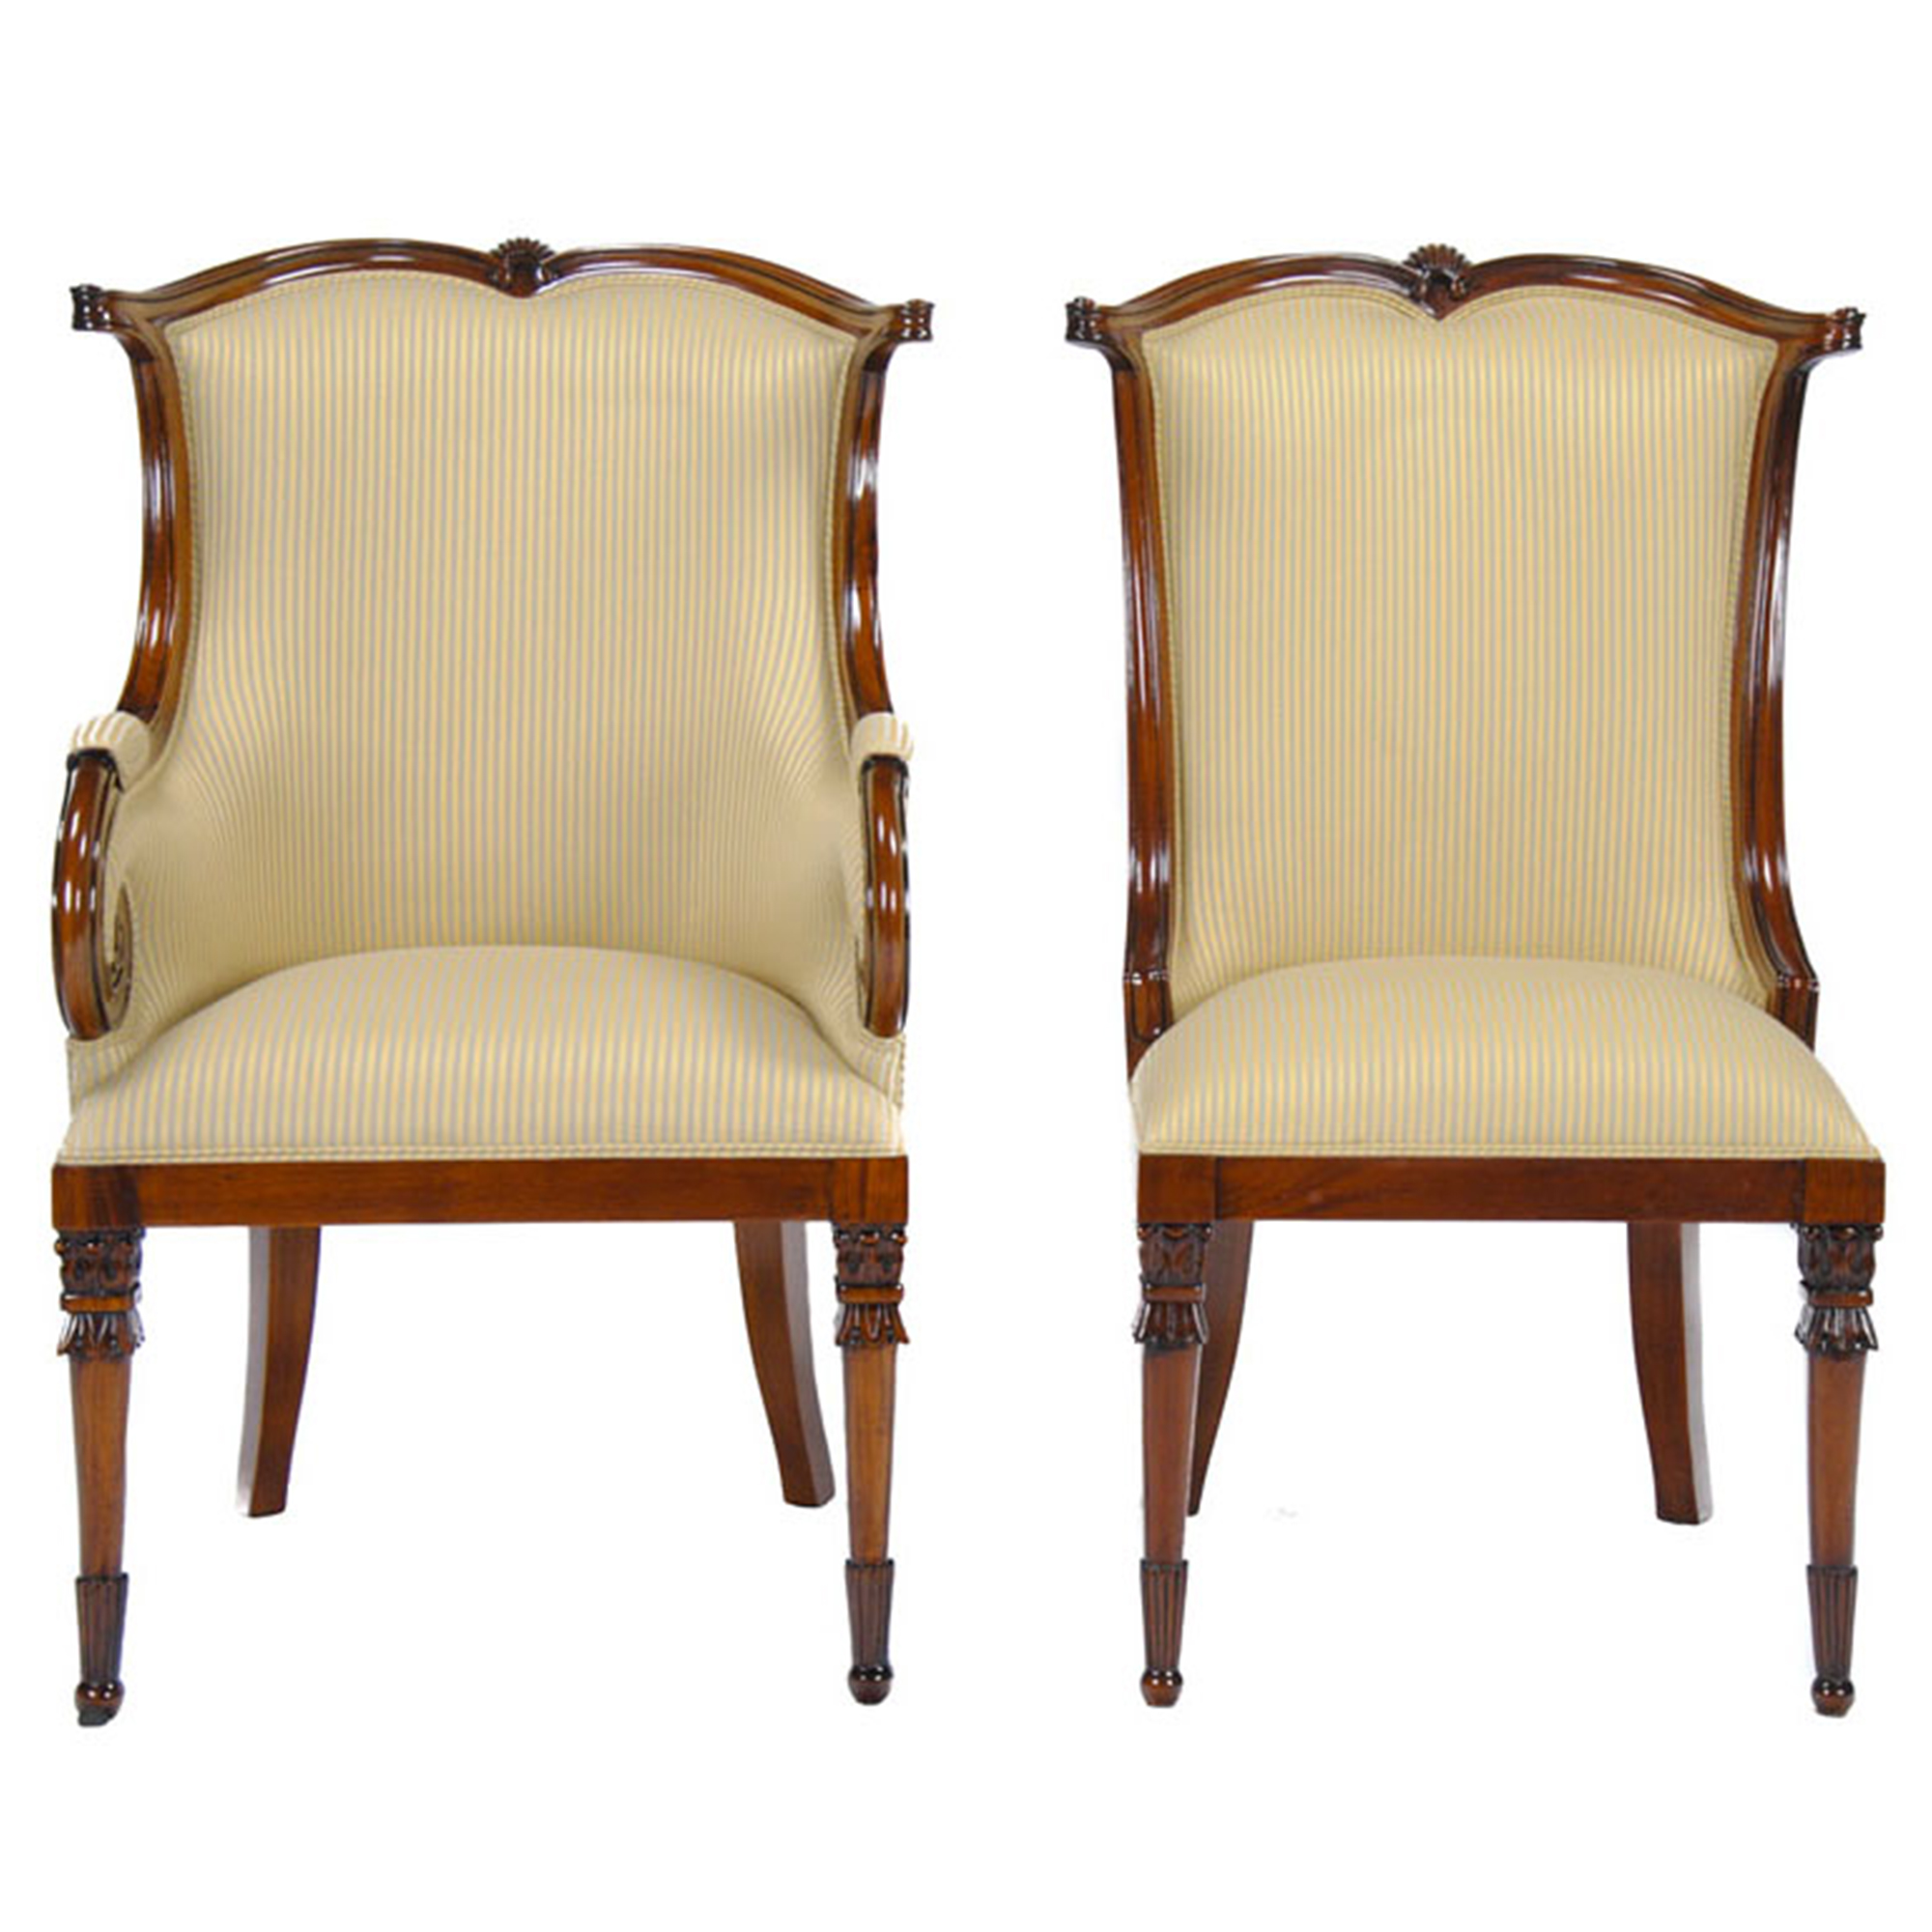 Upholstered Dining Chairs American Upholstered Dining Chairs Set Of 10 Niagara